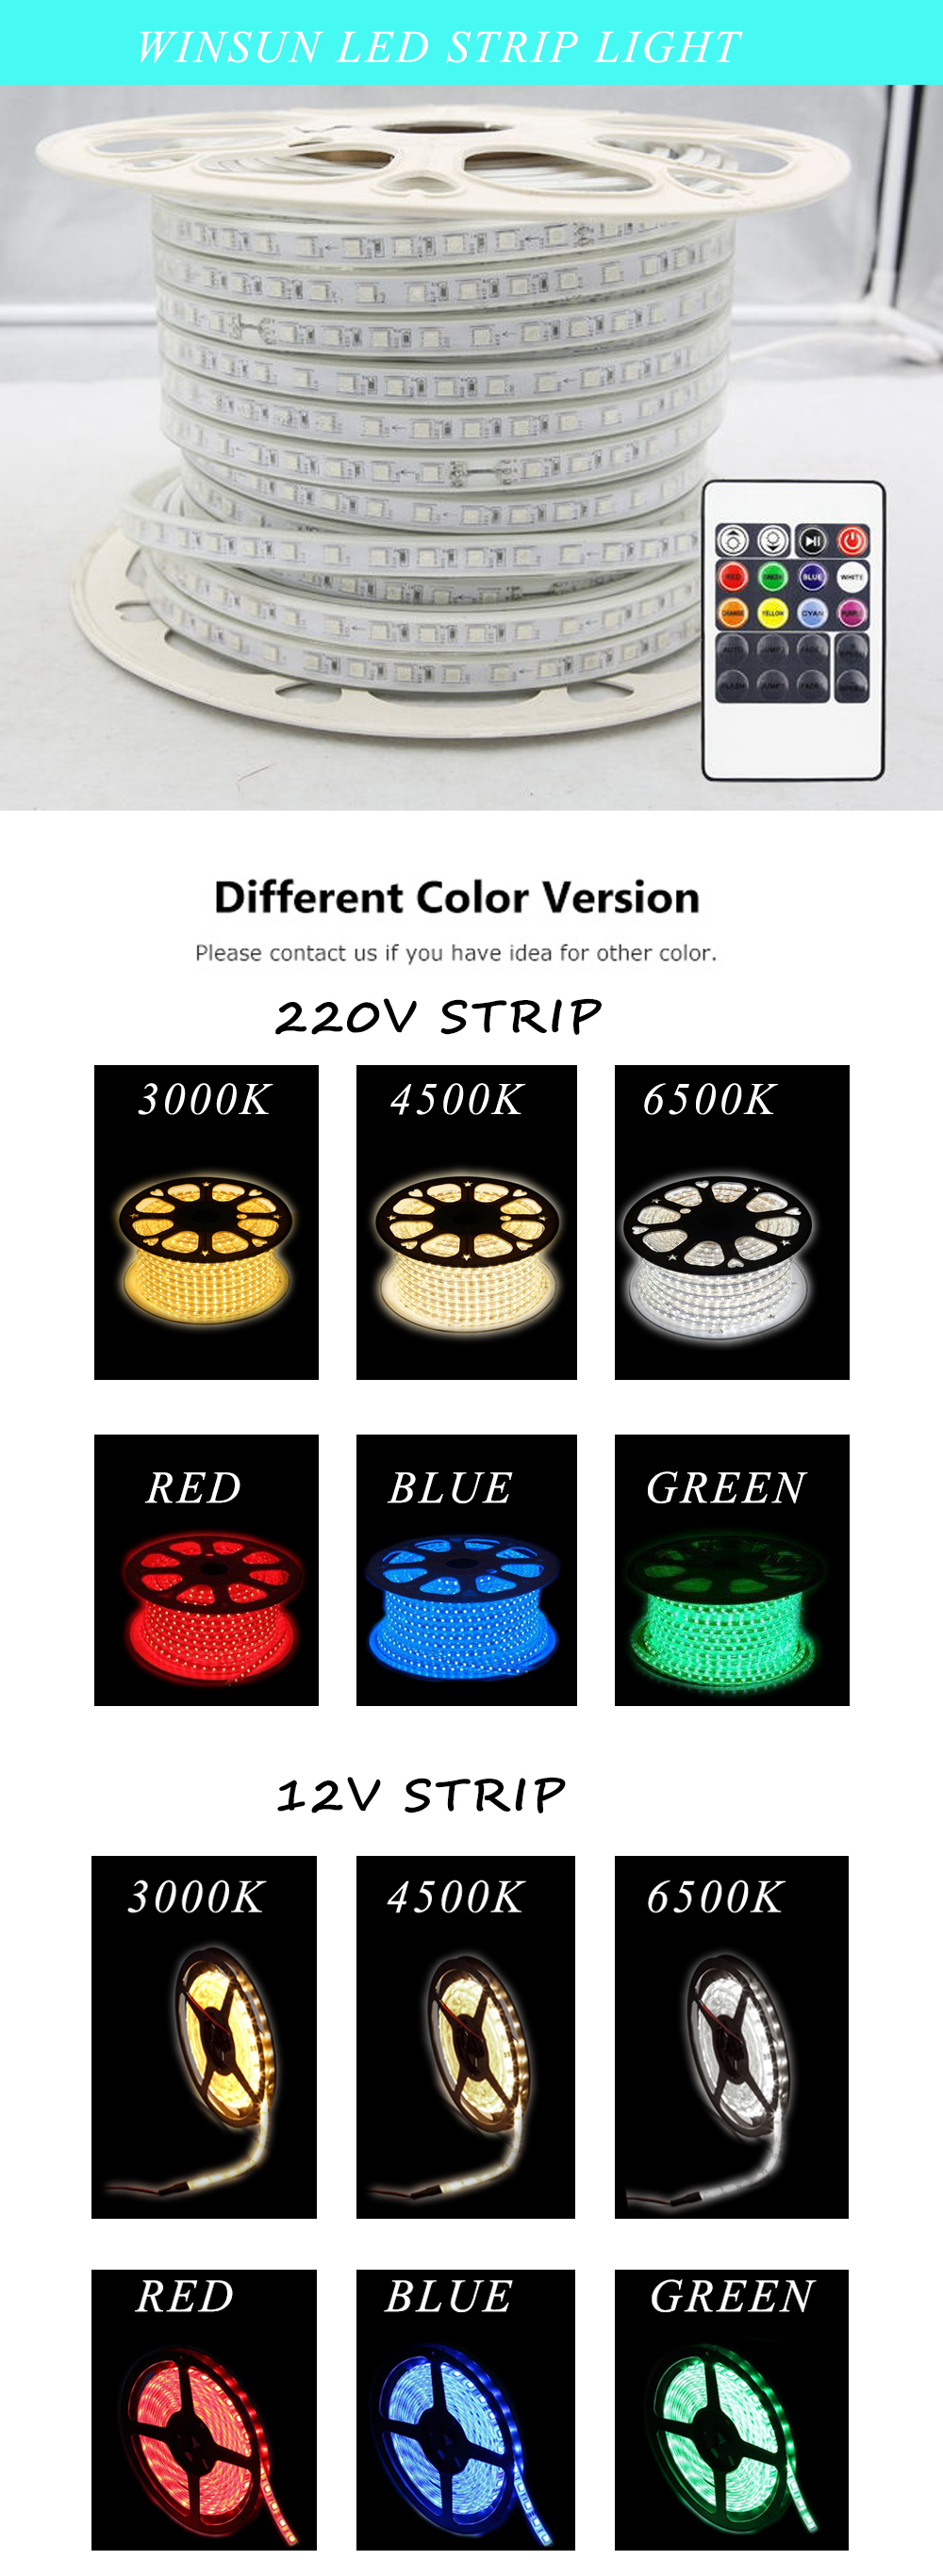 5M Remote Control High lumen DC12V smd 5050 rgb led flexible strip light